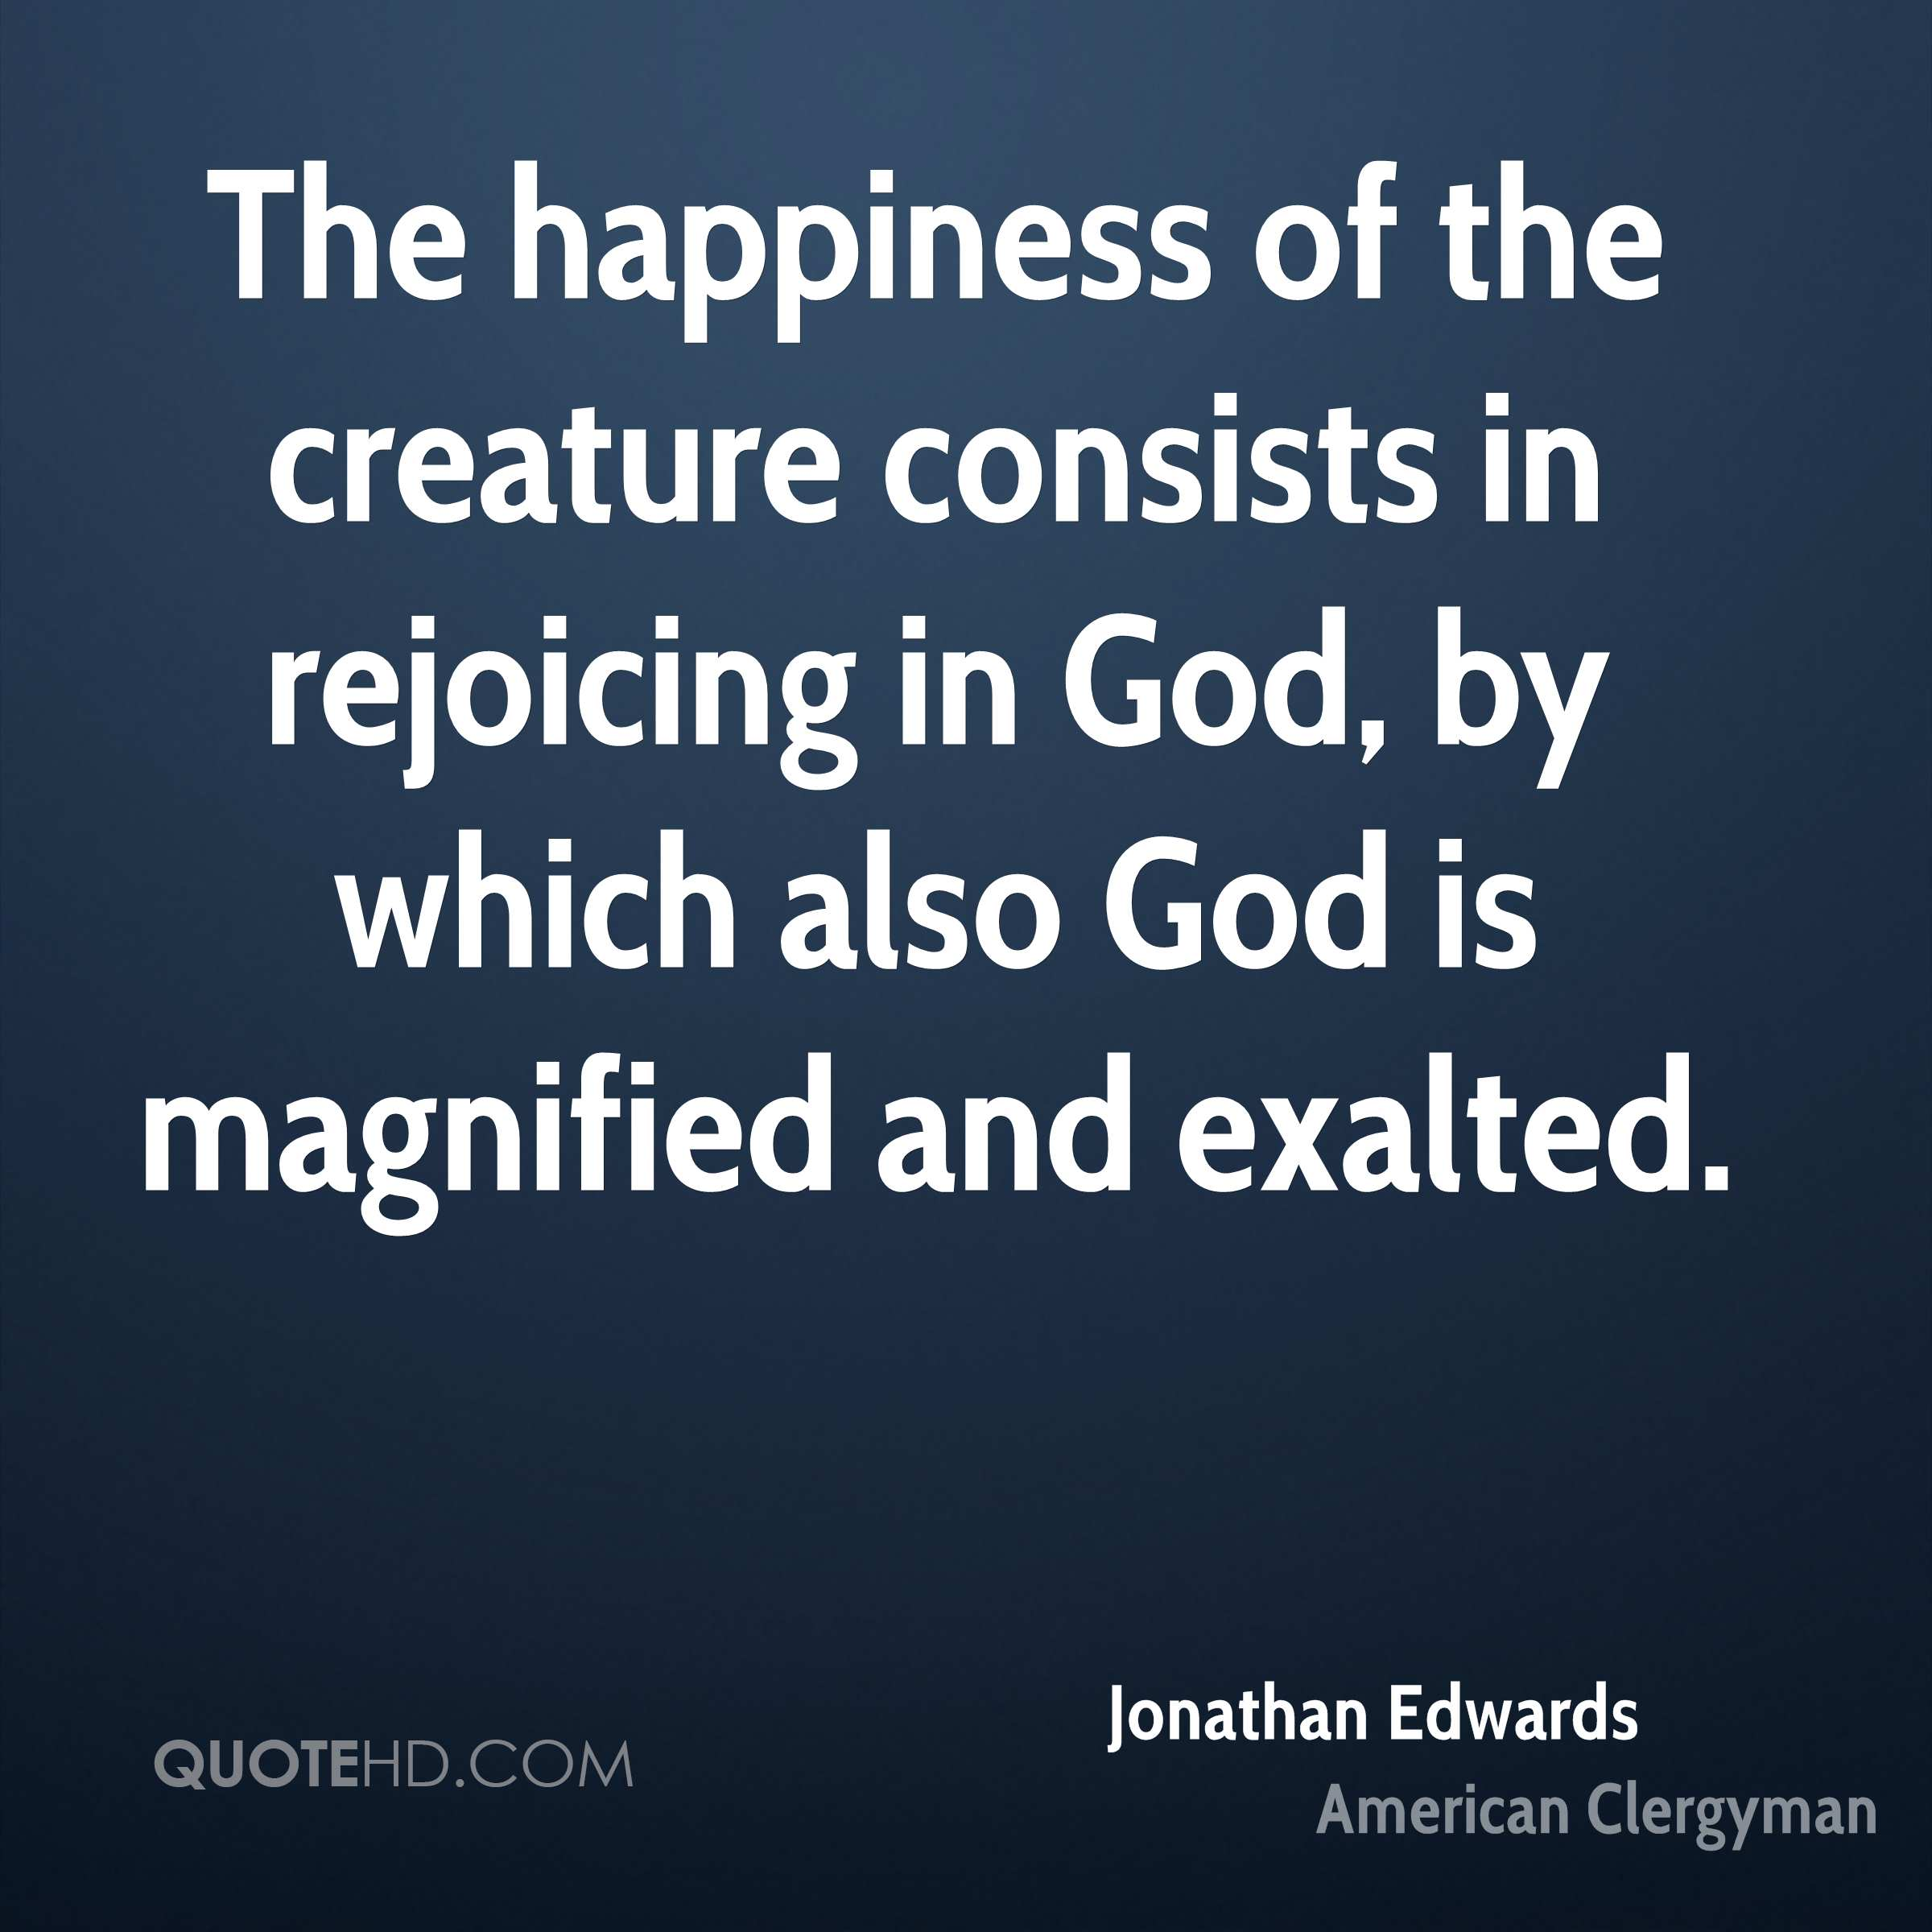 The happiness of the creature consists in rejoicing in God, by which also God is magnified and exalted.